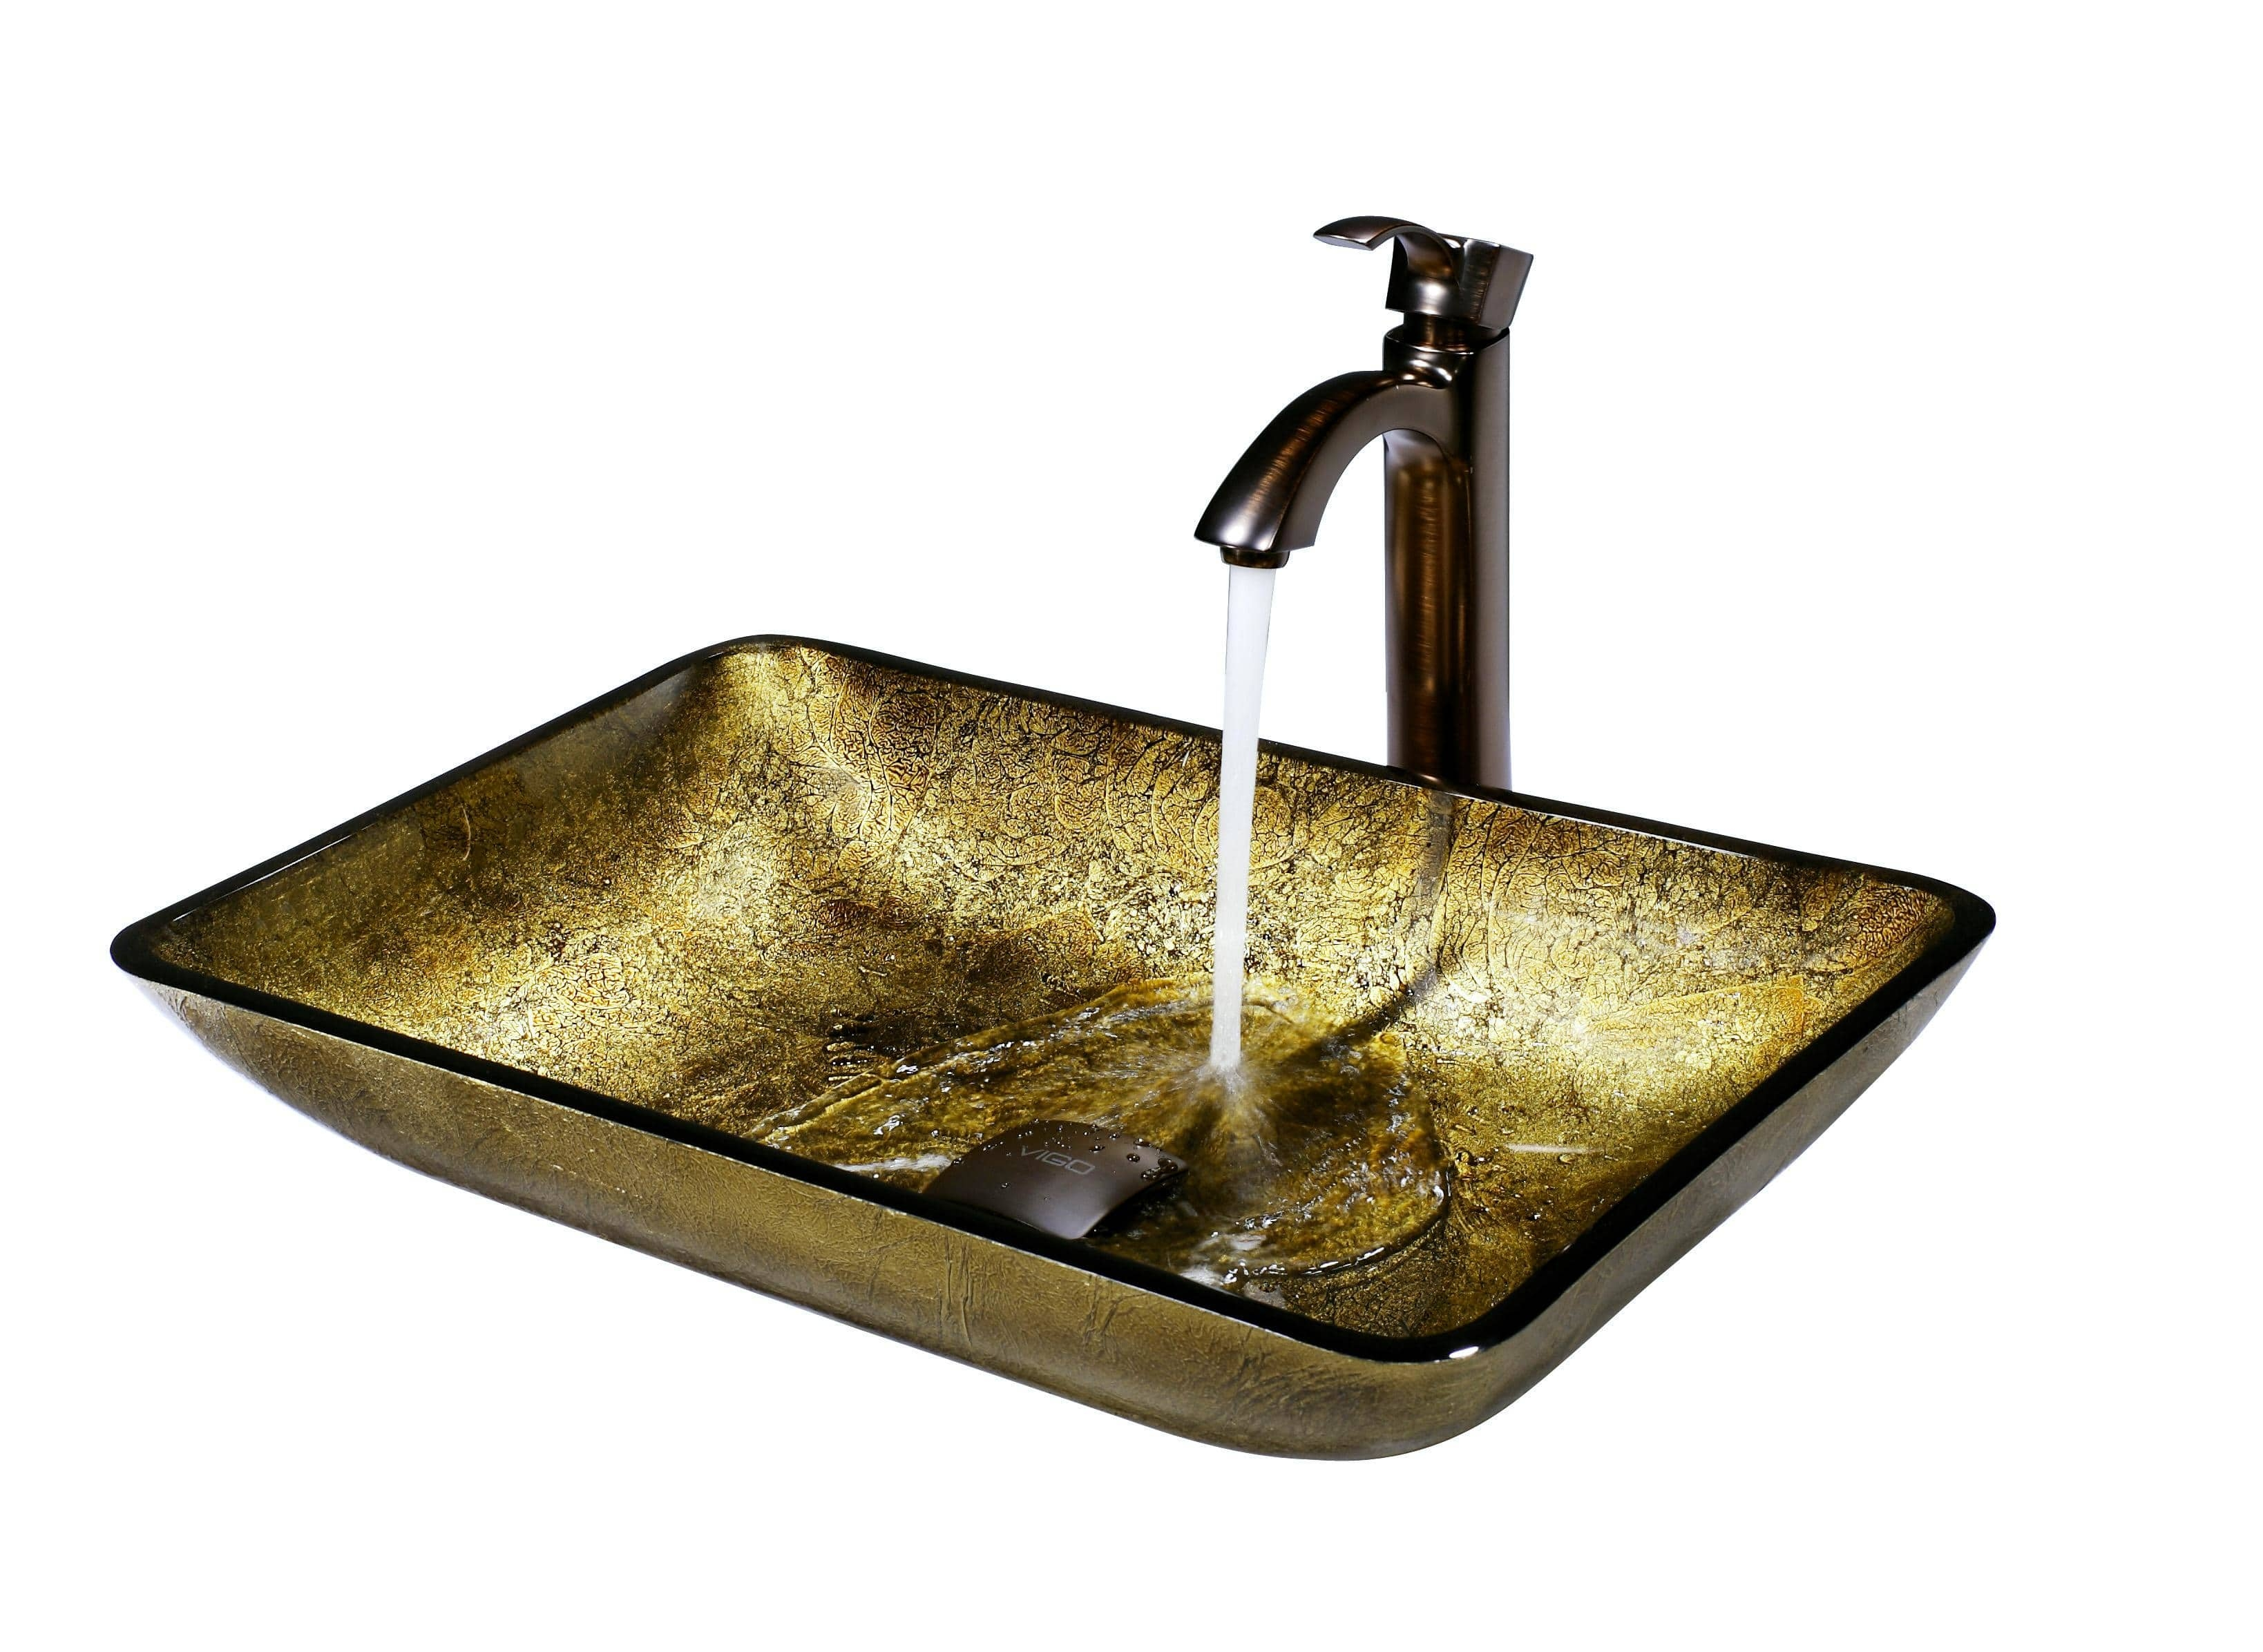 Ideas, bathroom sink and faucet sets bathroom sink and faucet sets vigo rectangular copper glass vessel sink and faucet set in oil 3276 x 2392  .